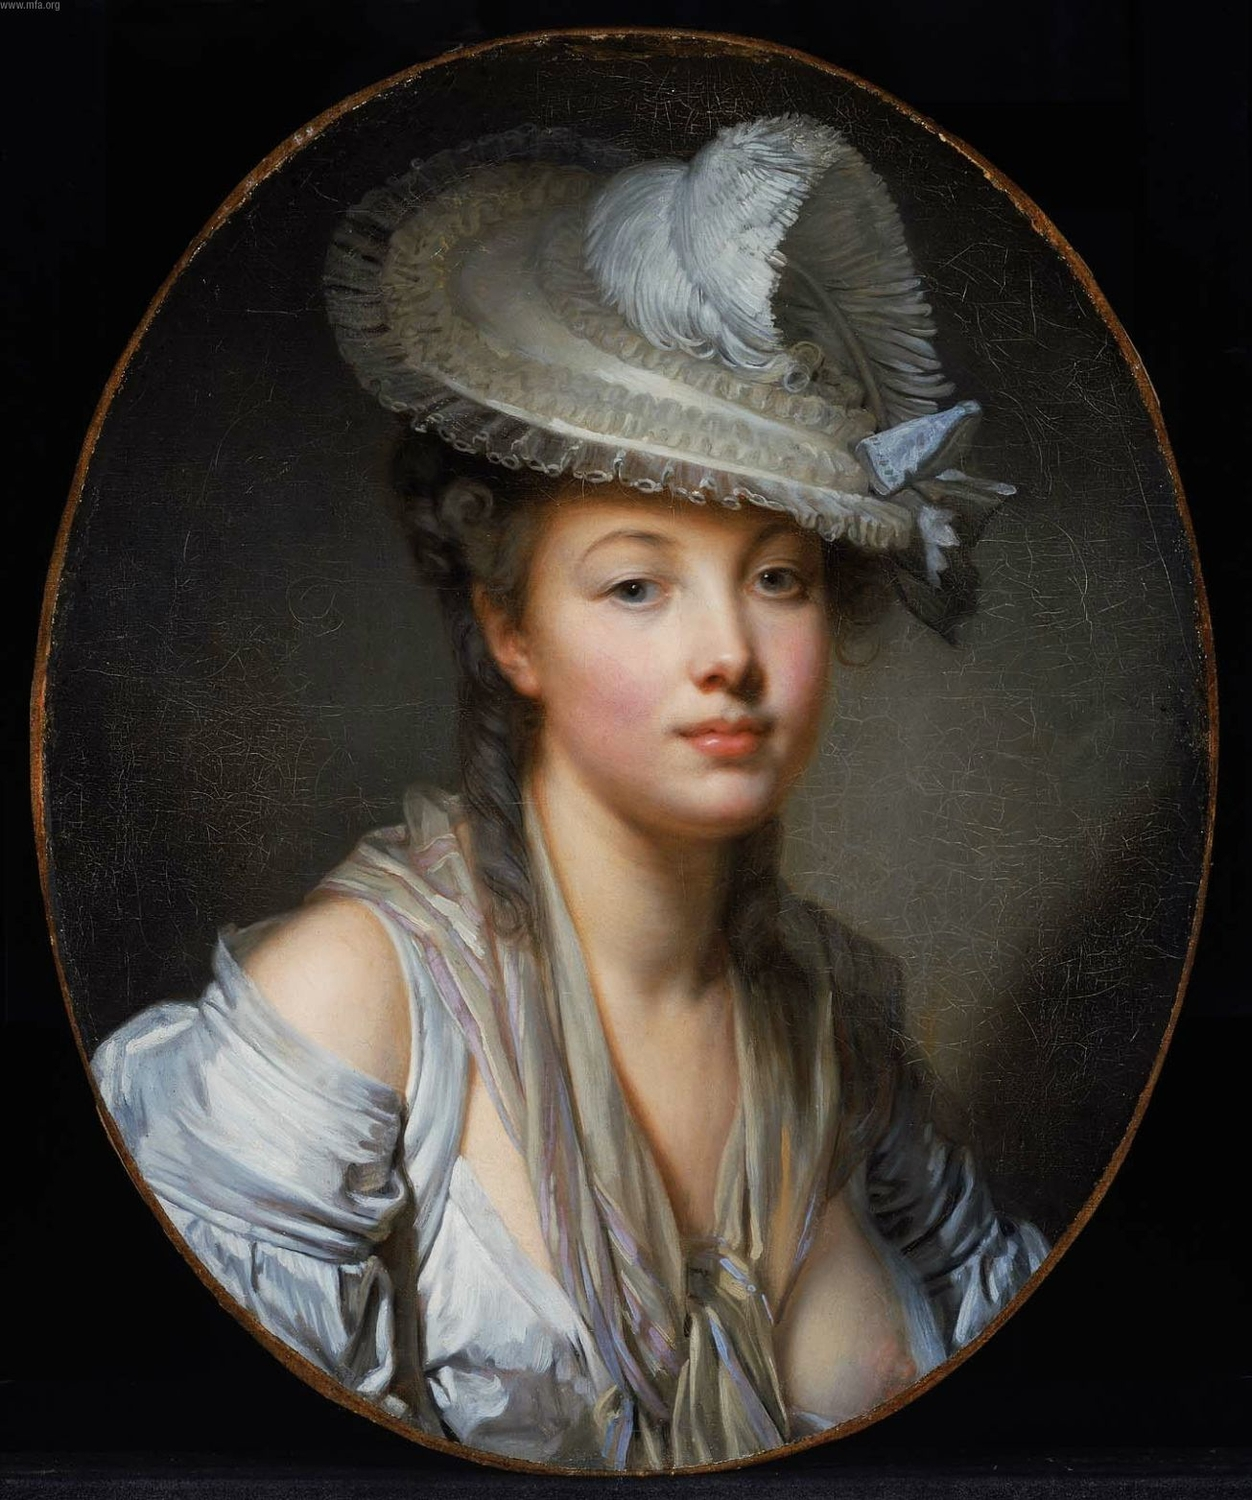 http://www.costumeantique.de/data/kostuem/rokoko/1780_Jean-Baptiste_Greuze_-_The_White_Hat.jpg